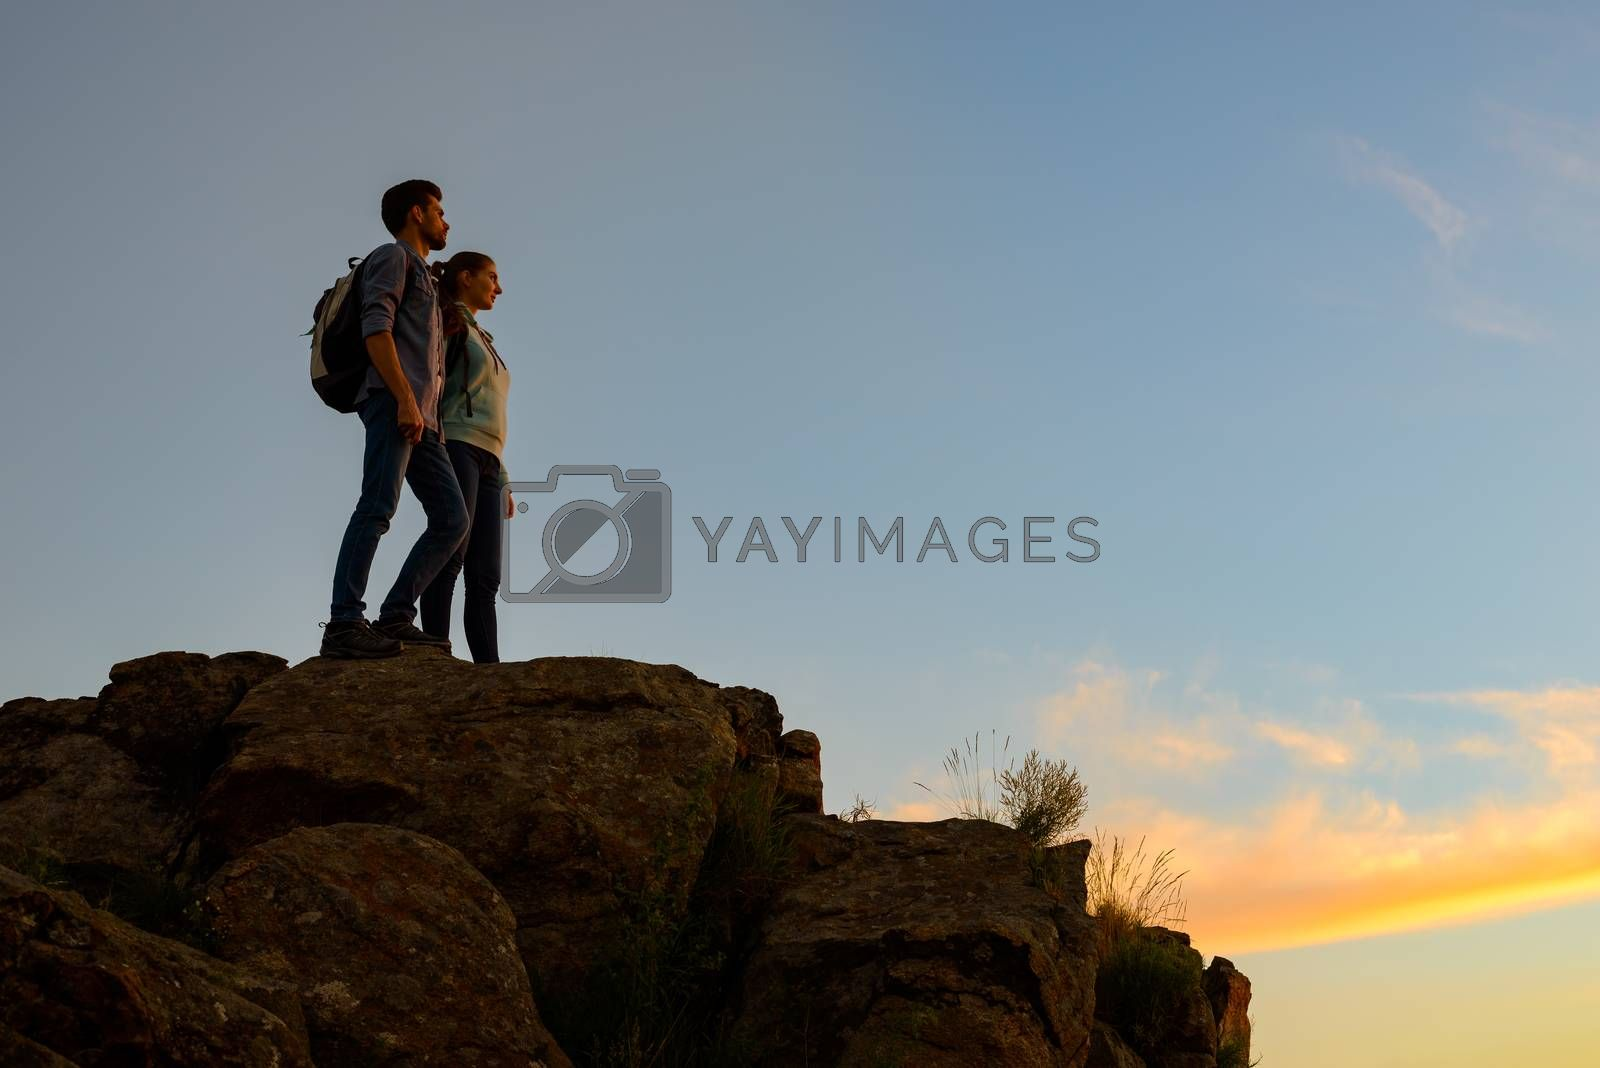 Couple of Young Travelers with Backpacks Standing on the Top of the Rock at Summer Sunset. Family Travel and Adventure Concept.